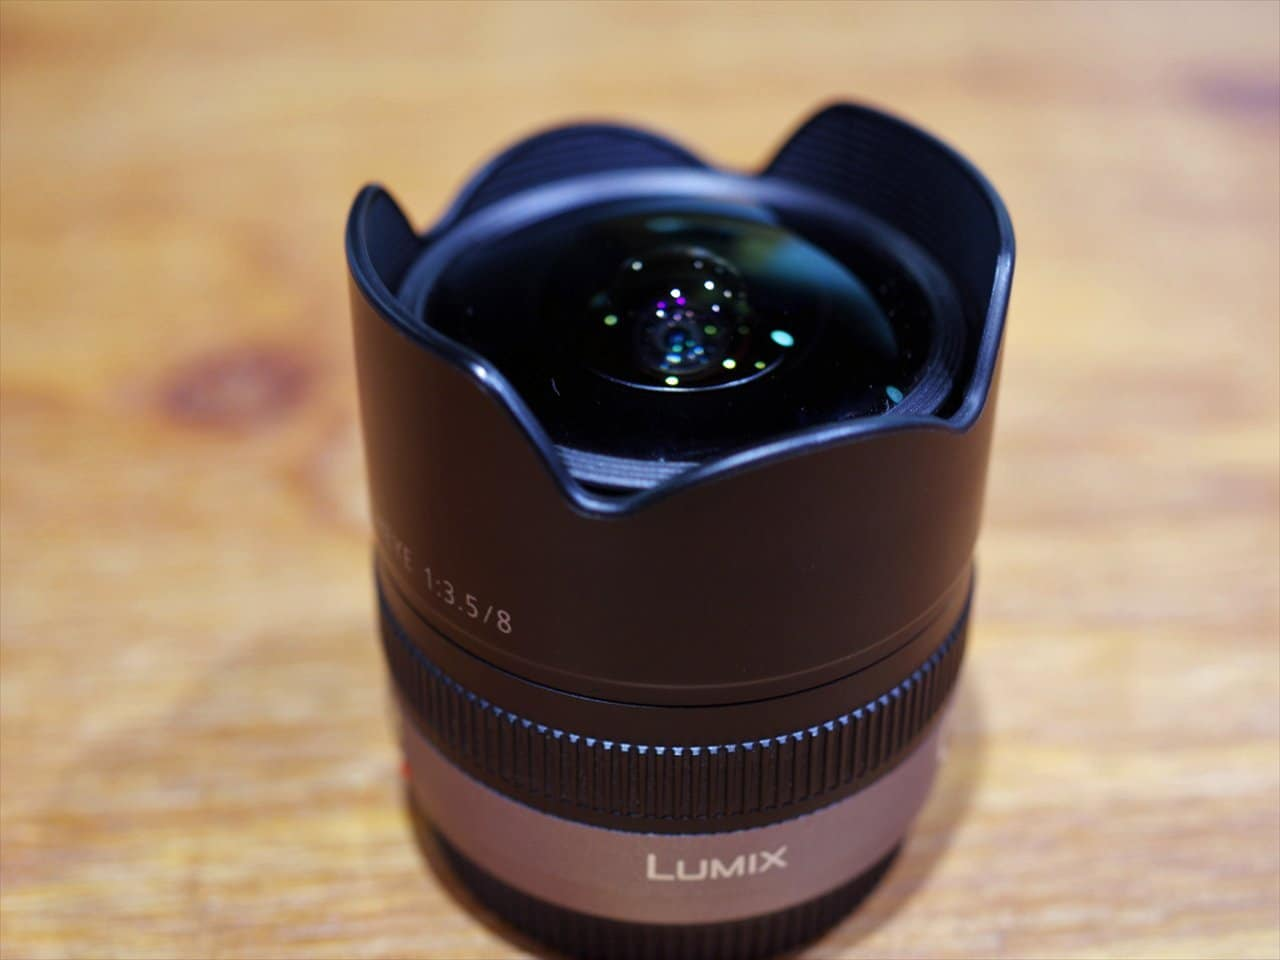 Panasonic 8mm f3.5 fish eye